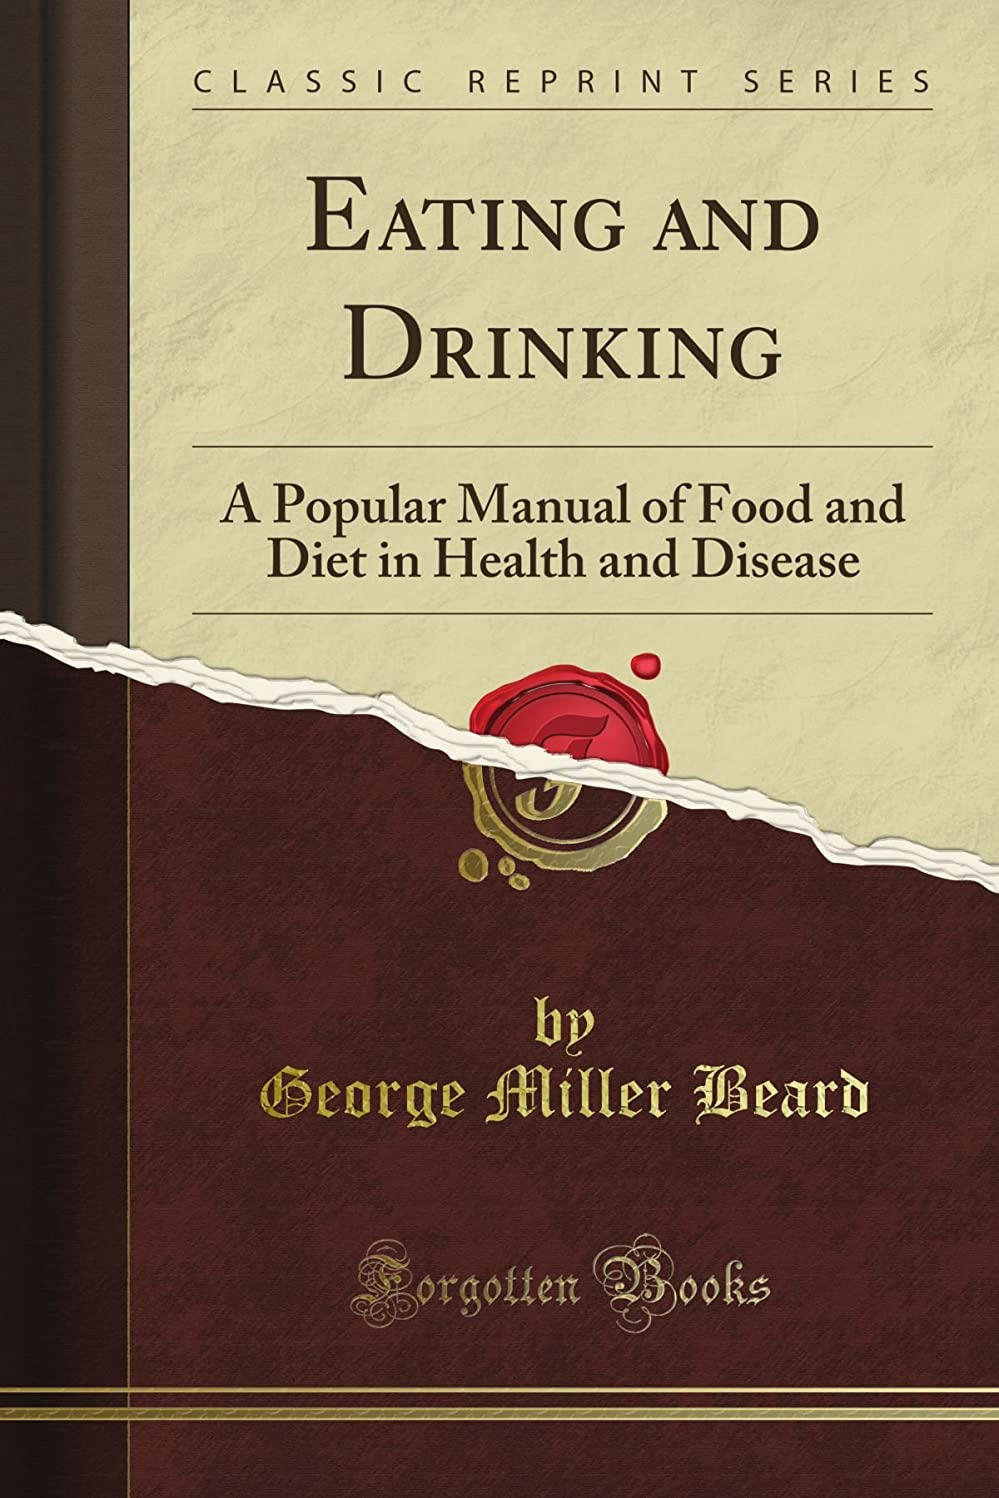 ブルジョン場所エラーEating and Drinking: A Popular Manual of Food and Diet in Health and Disease (Classic Reprint)